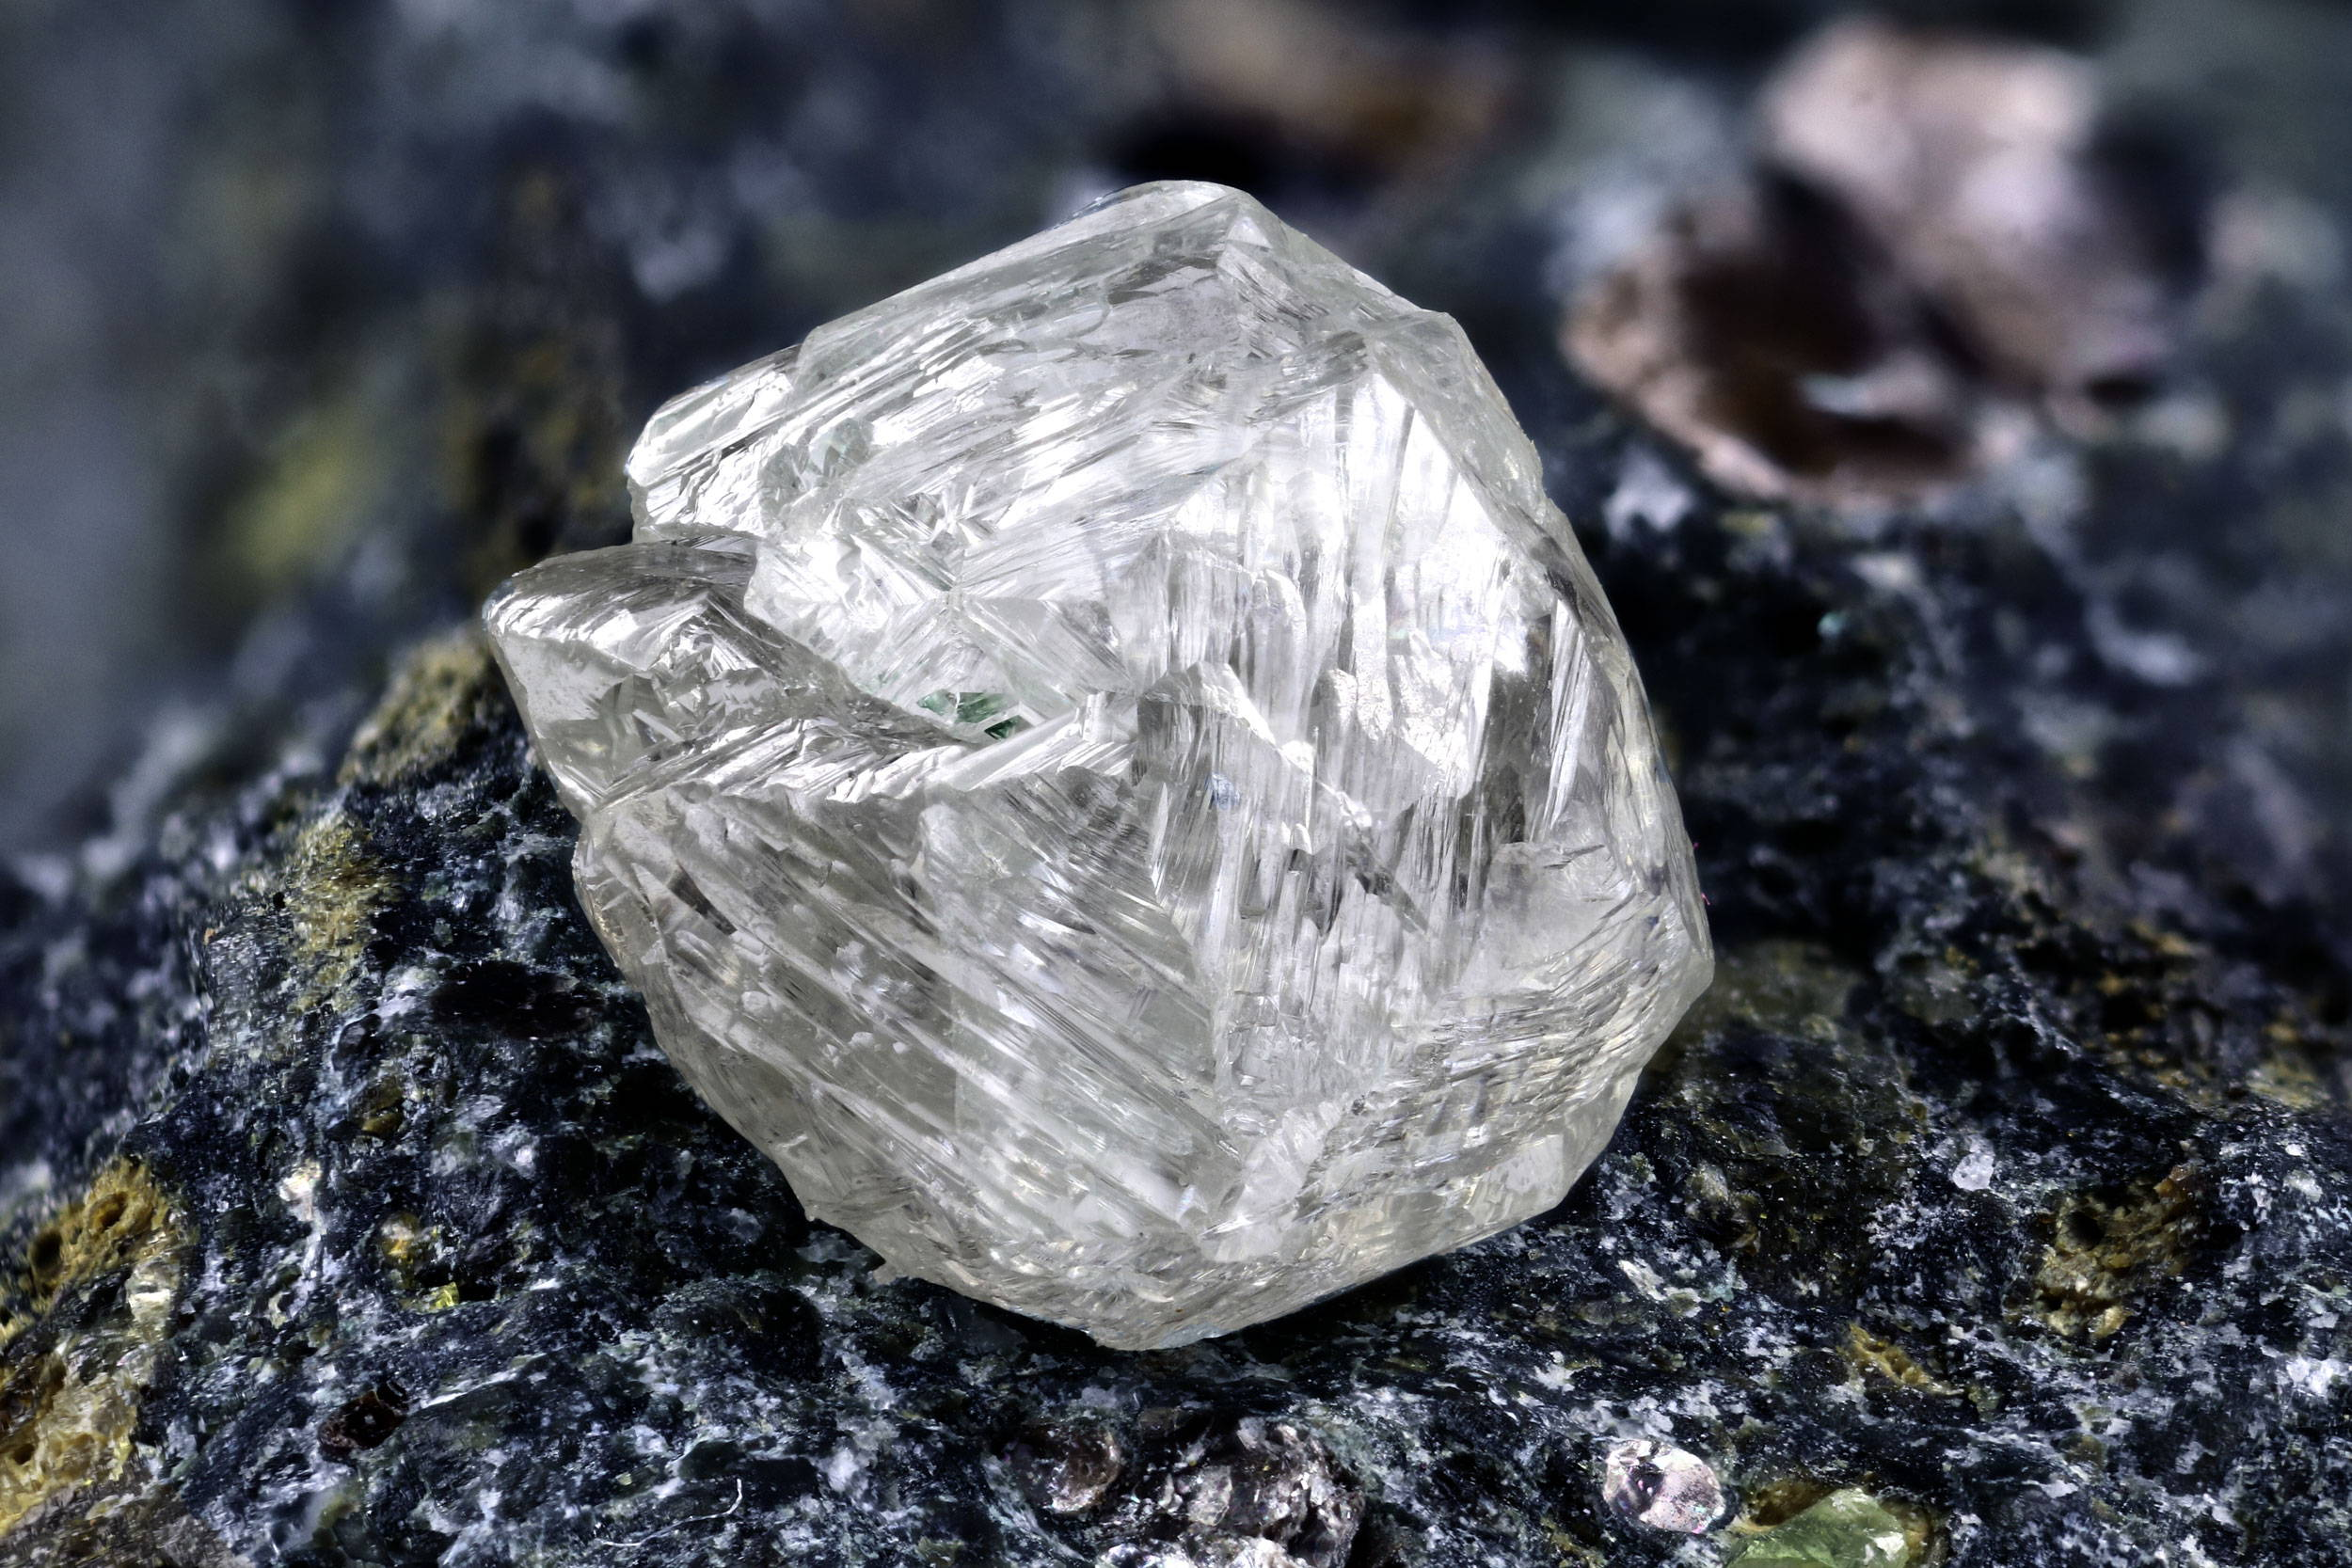 Rough diamond fresh from the mine, sitting on kimberlite. Canadian diamonds  available at K8 Jewelry Concepts Bijoux Montreal.